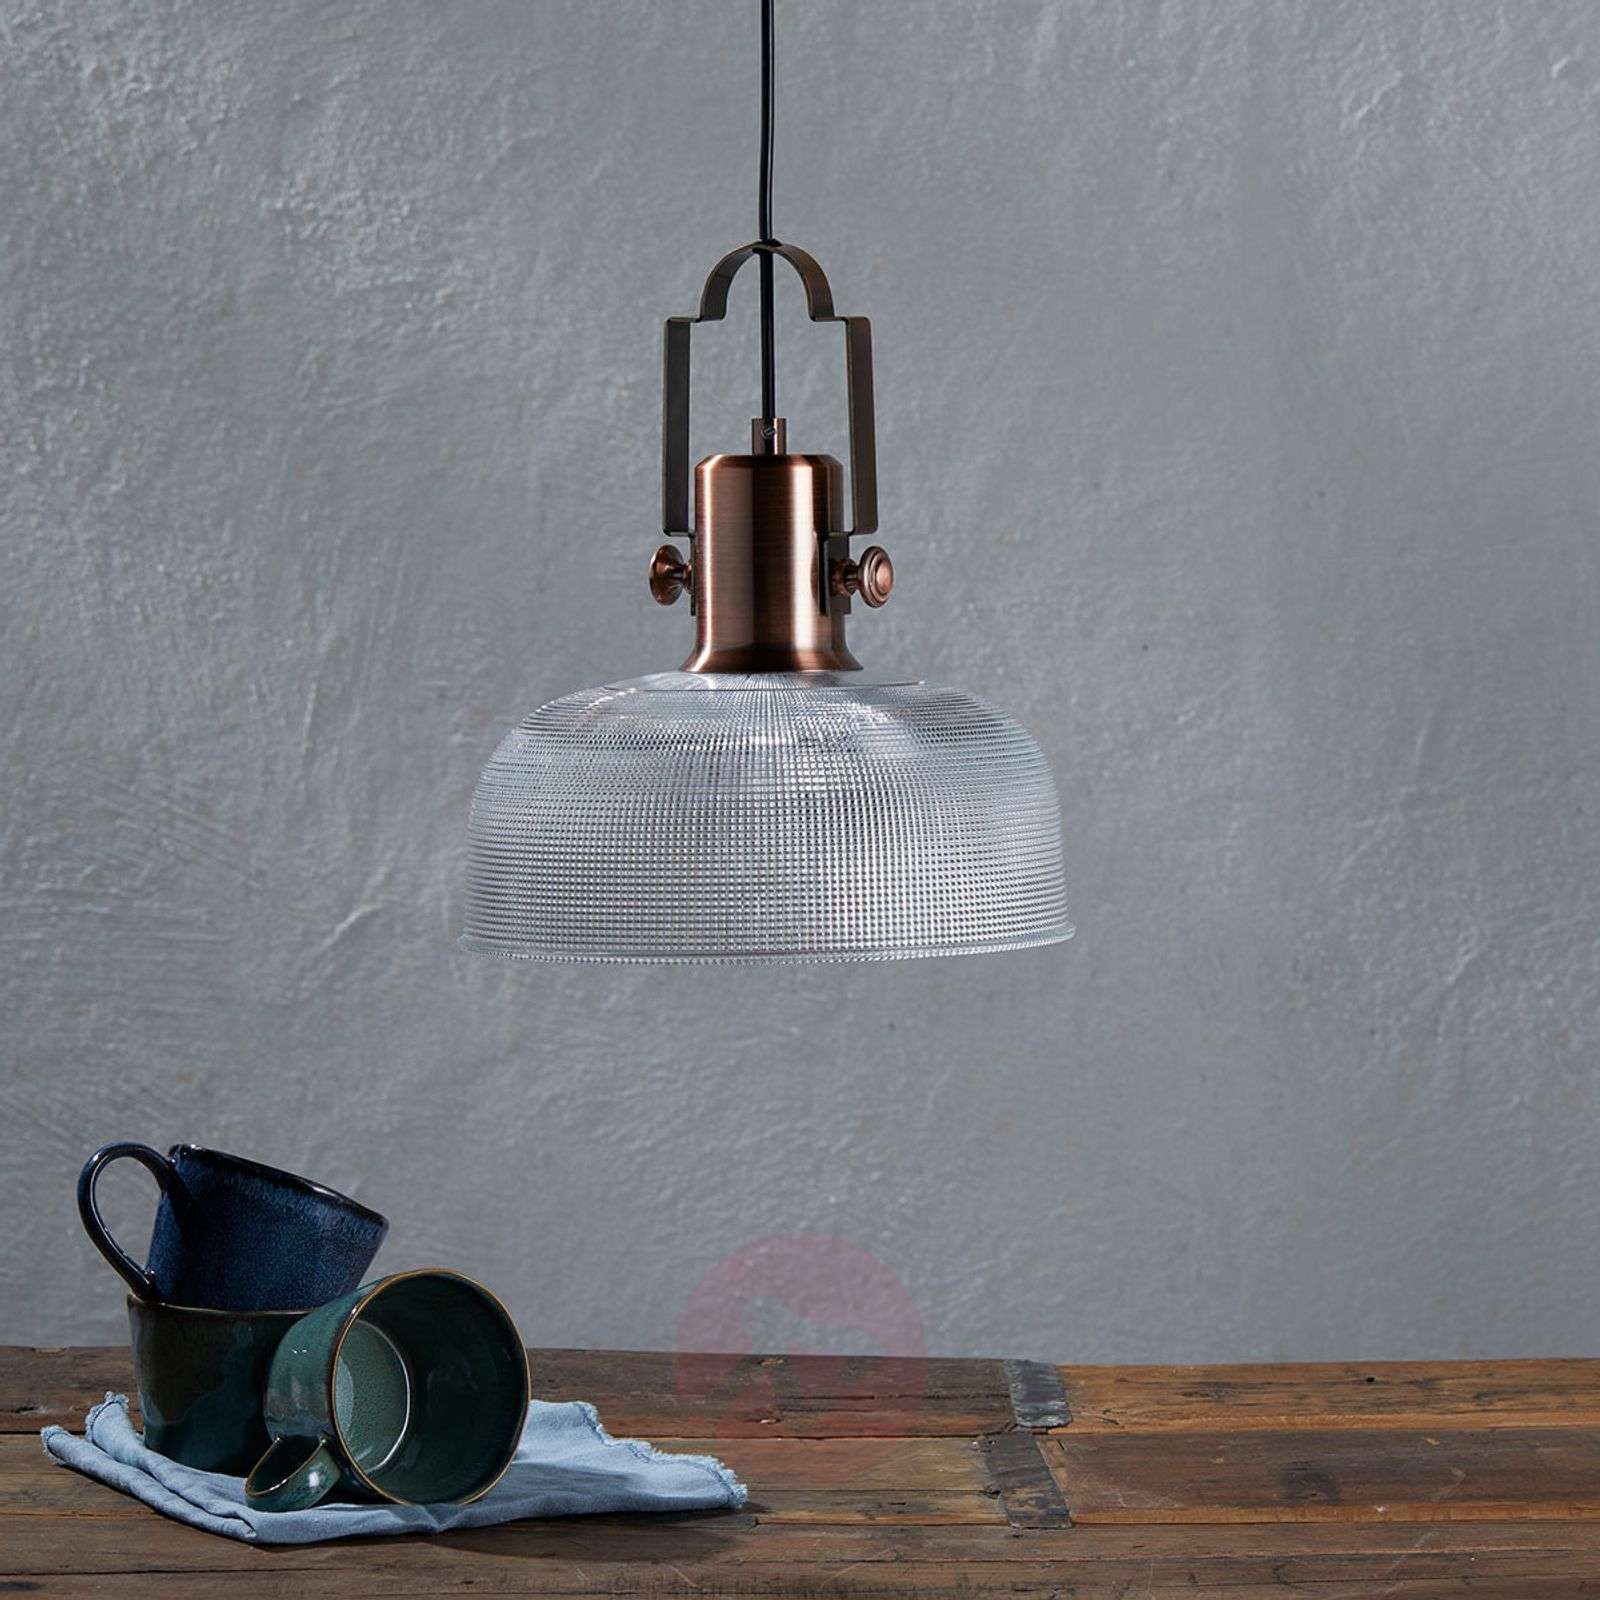 Pendant light Fietje with retro factor-9620881-02